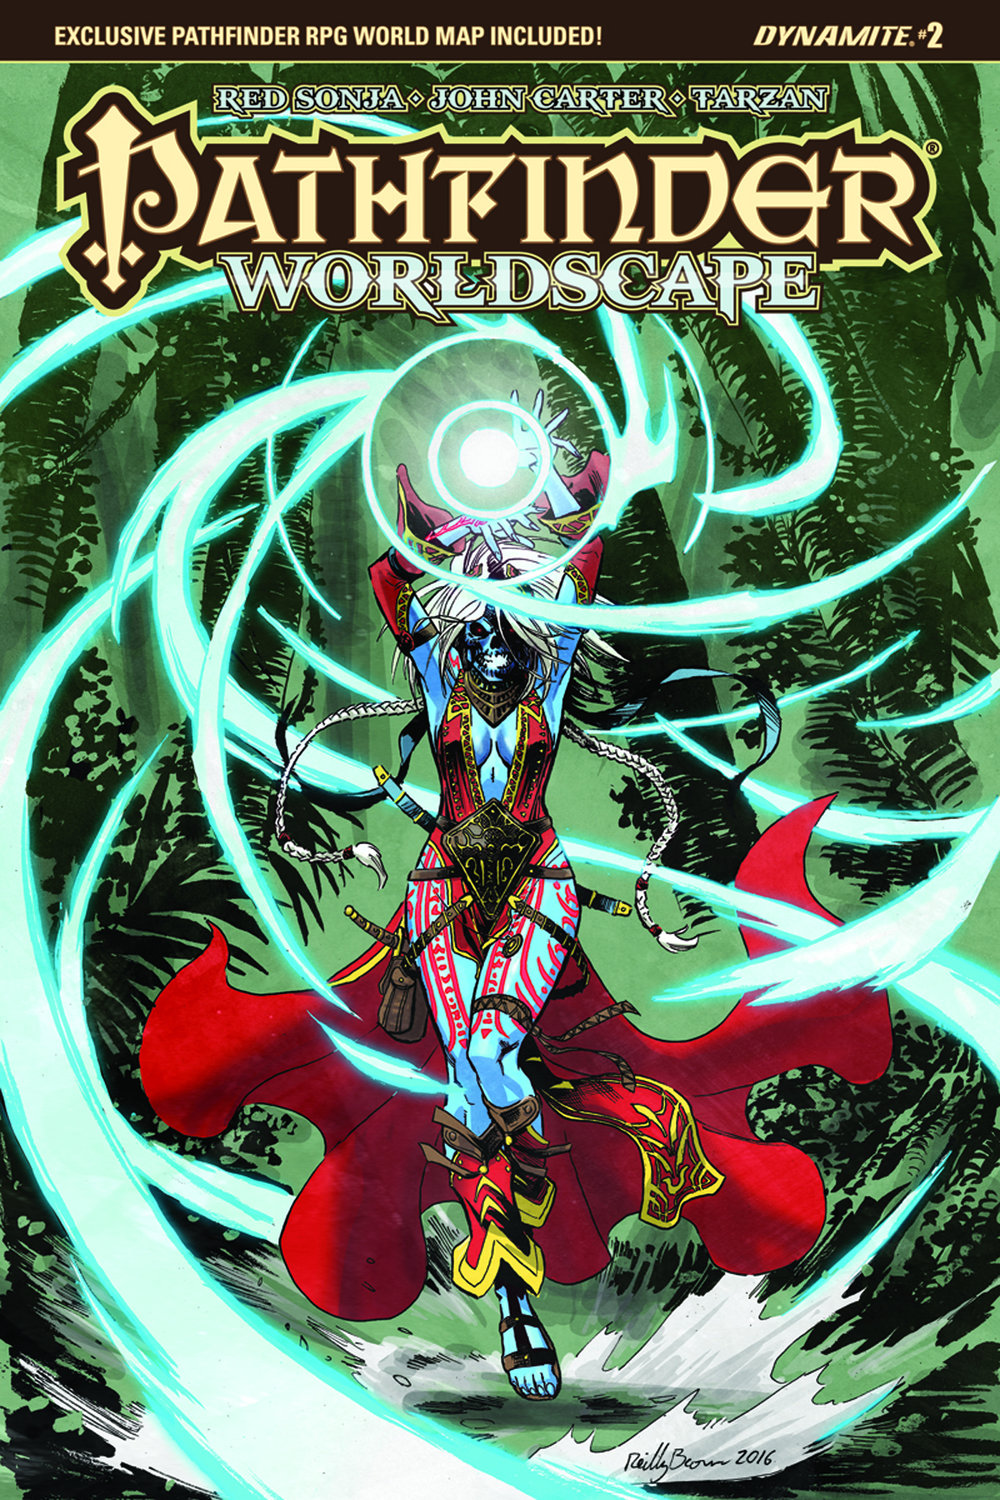 Pathfinder Worldscape #2, cover by Reilly Brown. (C) Dynamite Entertainment.